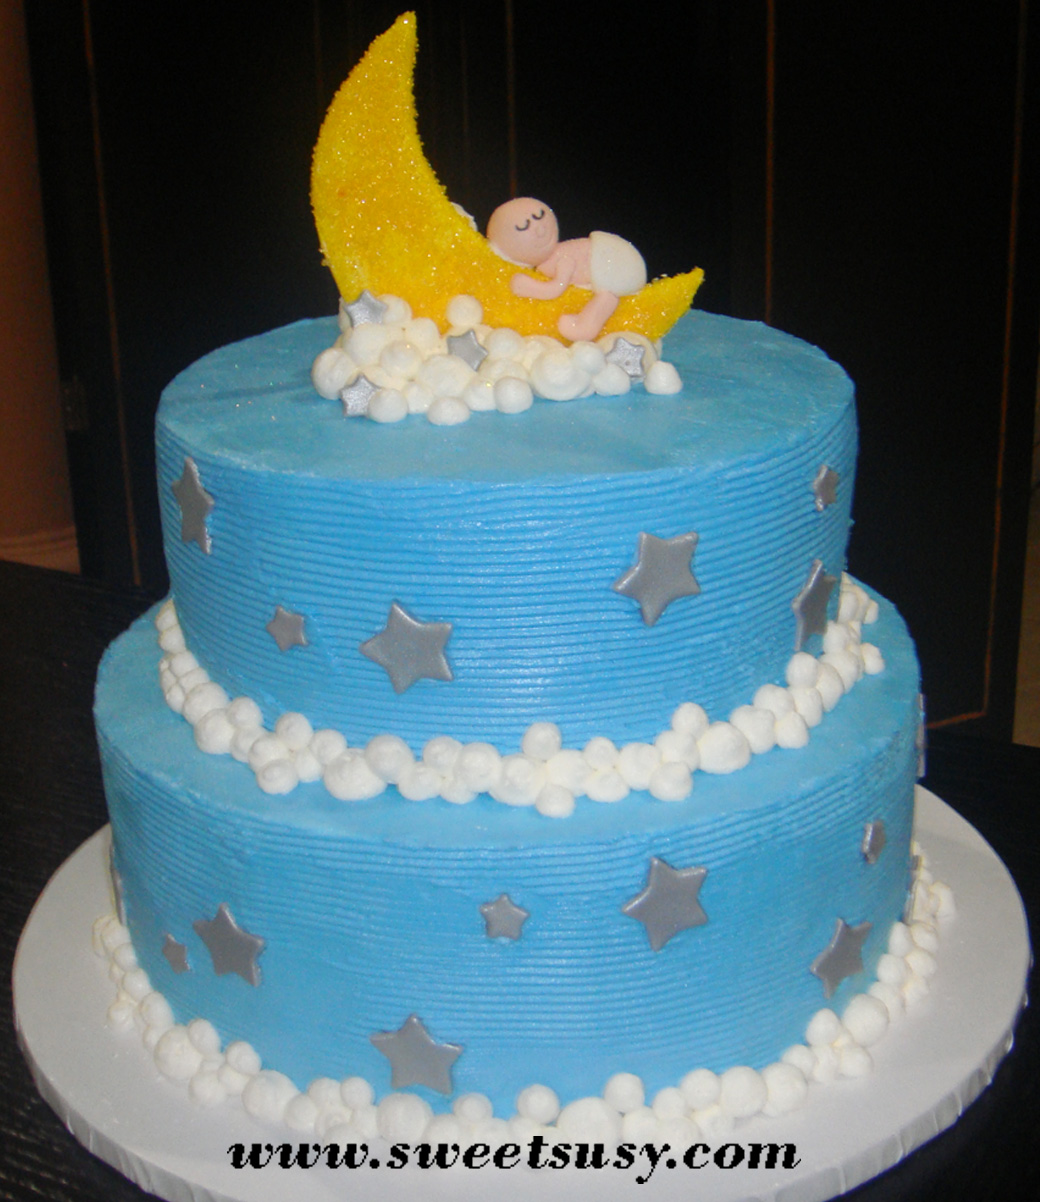 buttercream cakes can be made of or multi tier combination of yellow